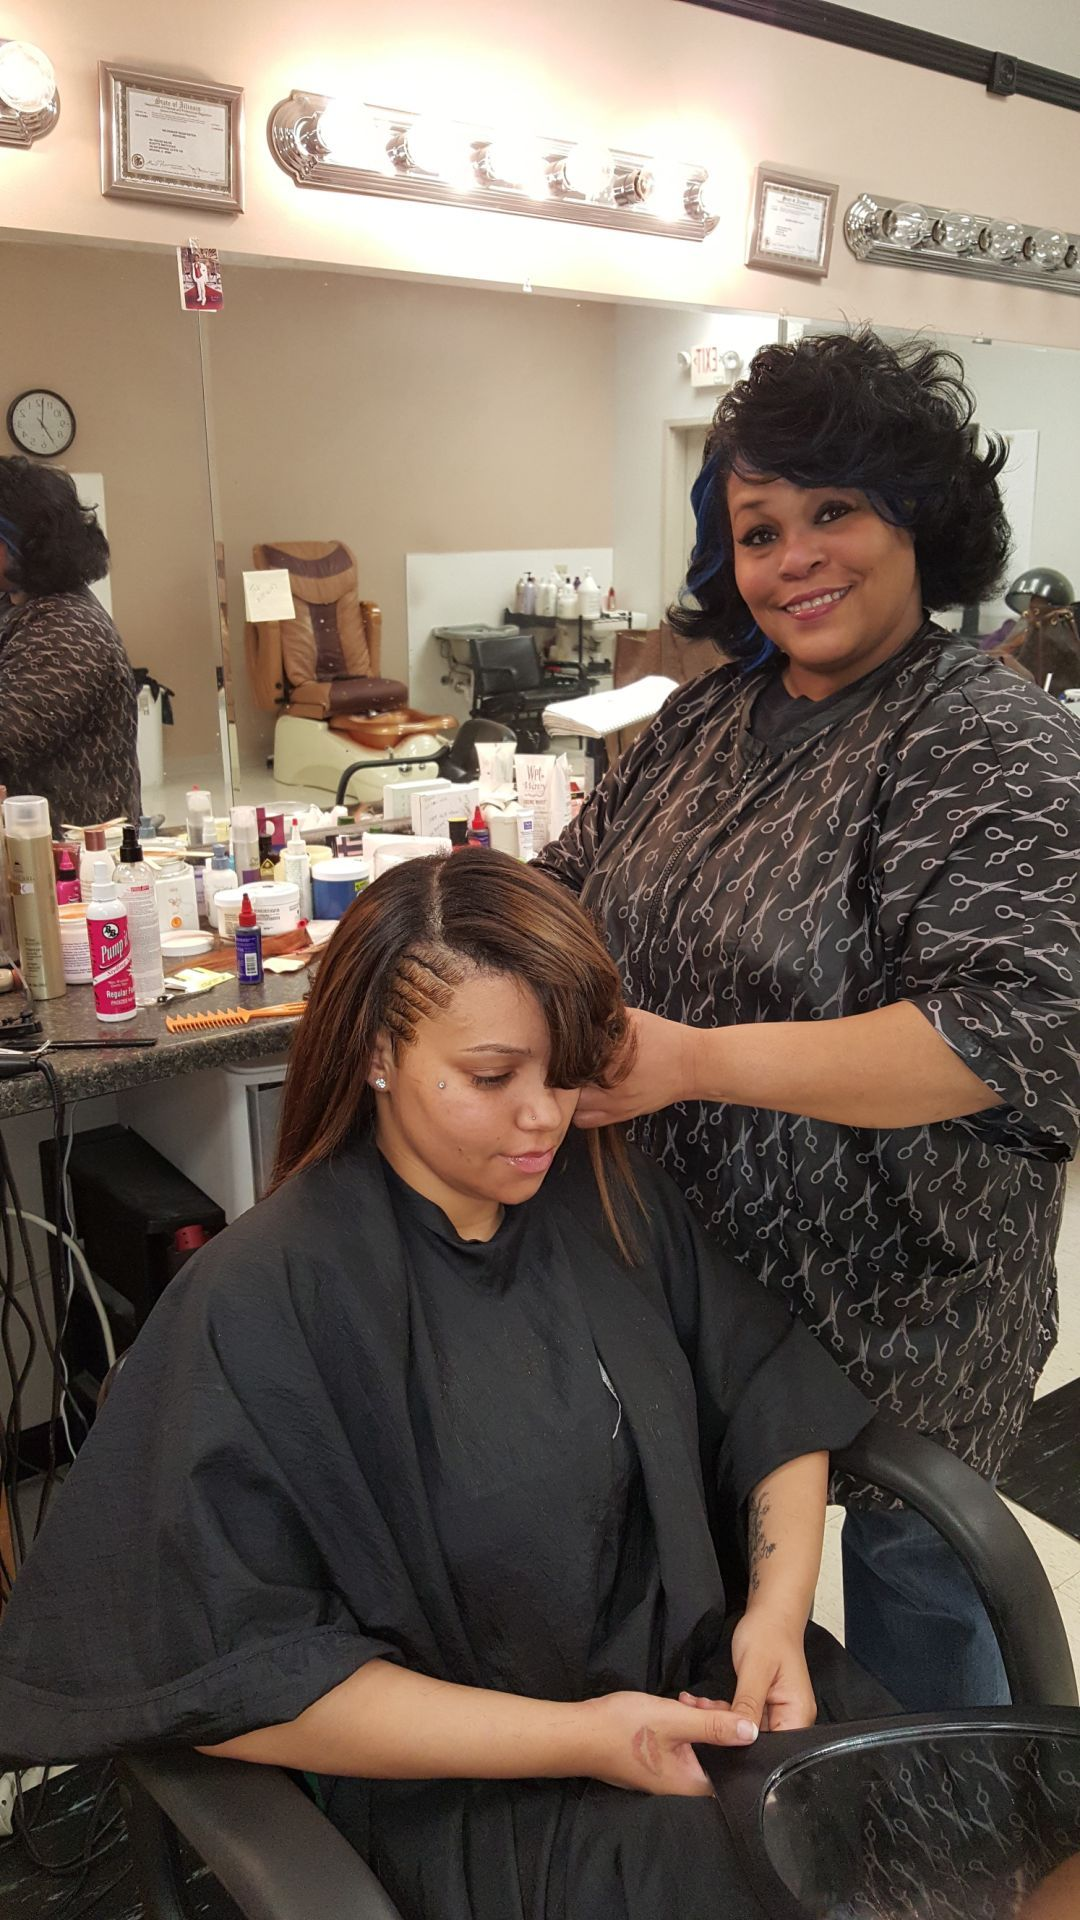 Illinois pulaski county mounds - Suzette Cole Owner Of Nu Visionz Hair Salon In Mounds